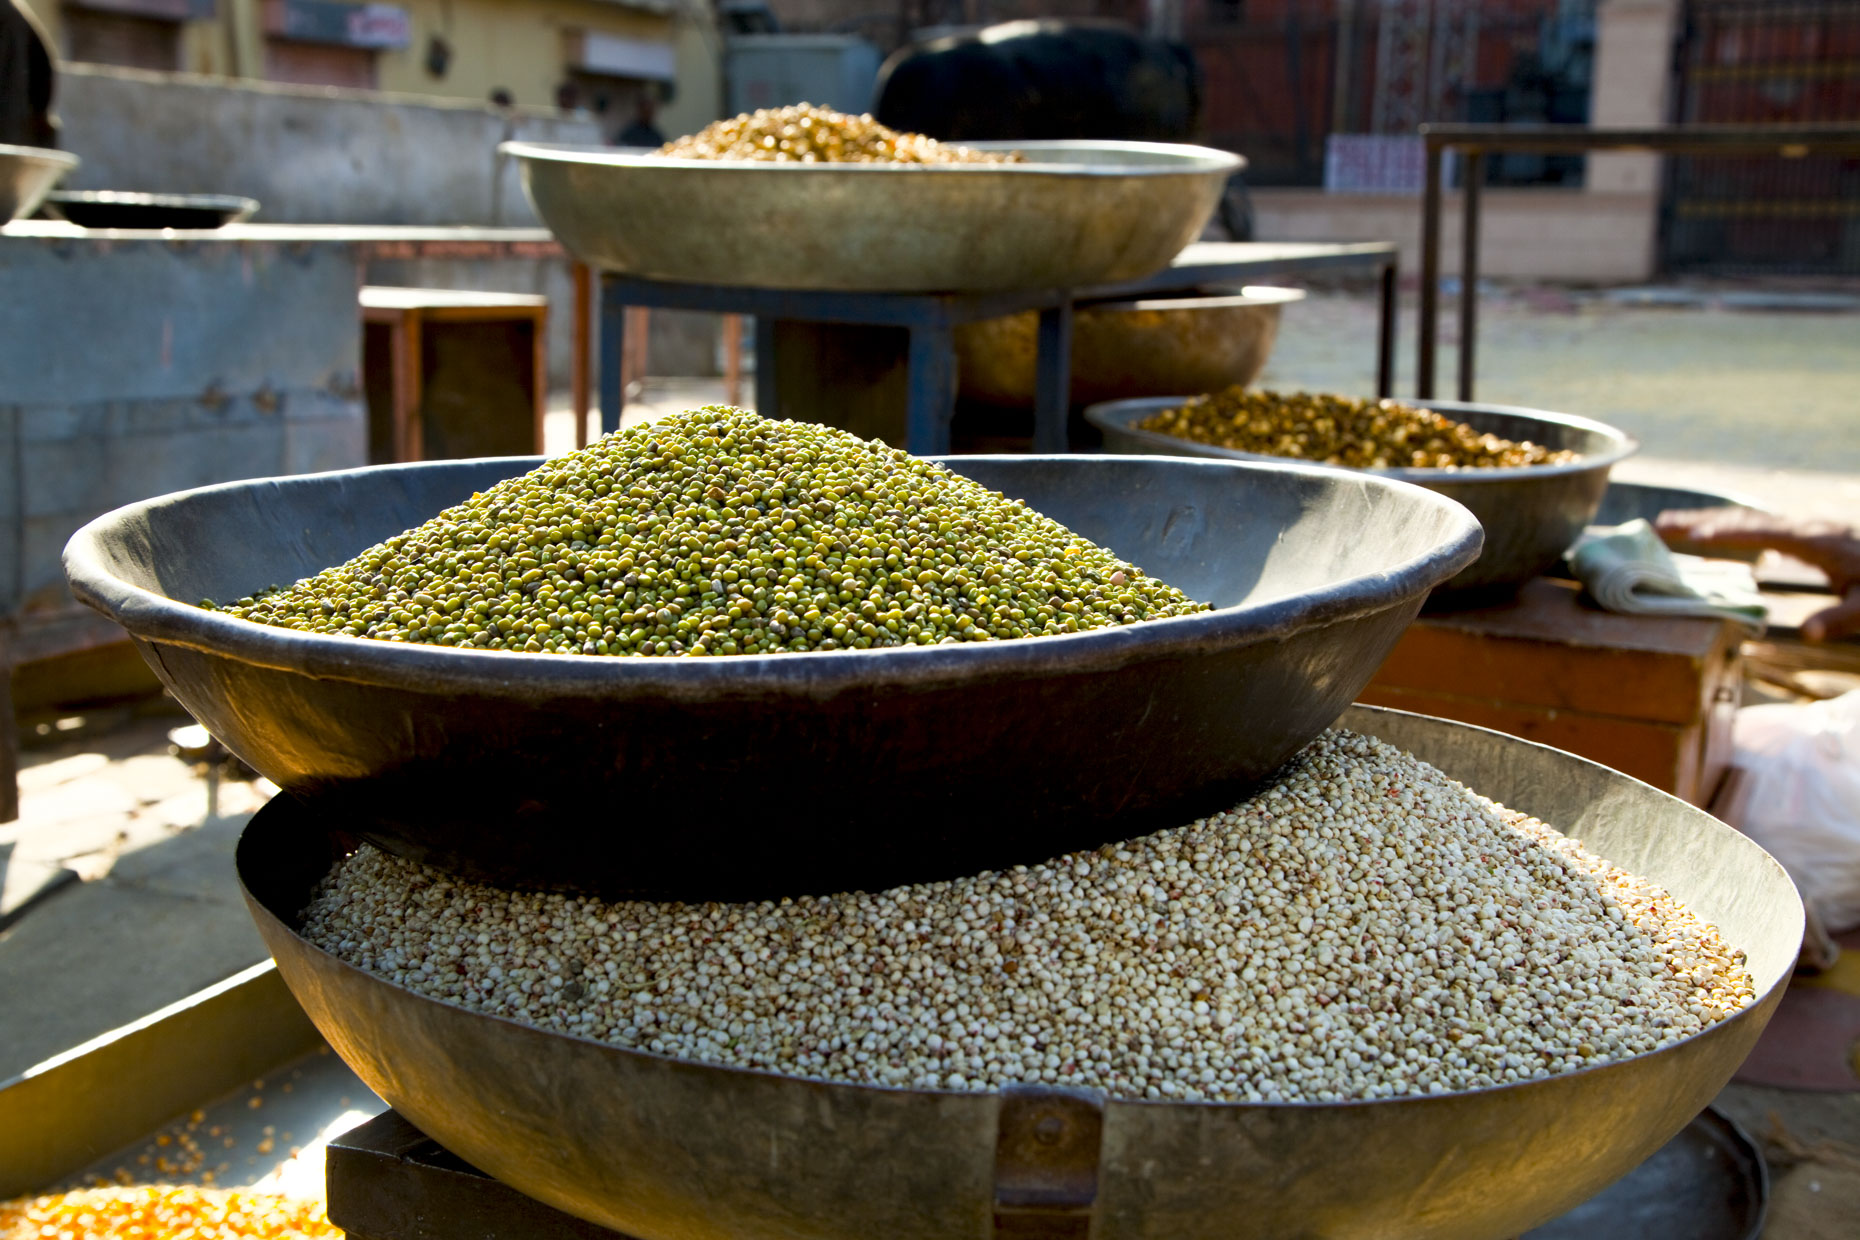 Lentils in brass bowls in outdoor market in Rajasthan India. Travel editorial photo by Inti St Clair Austin Texas